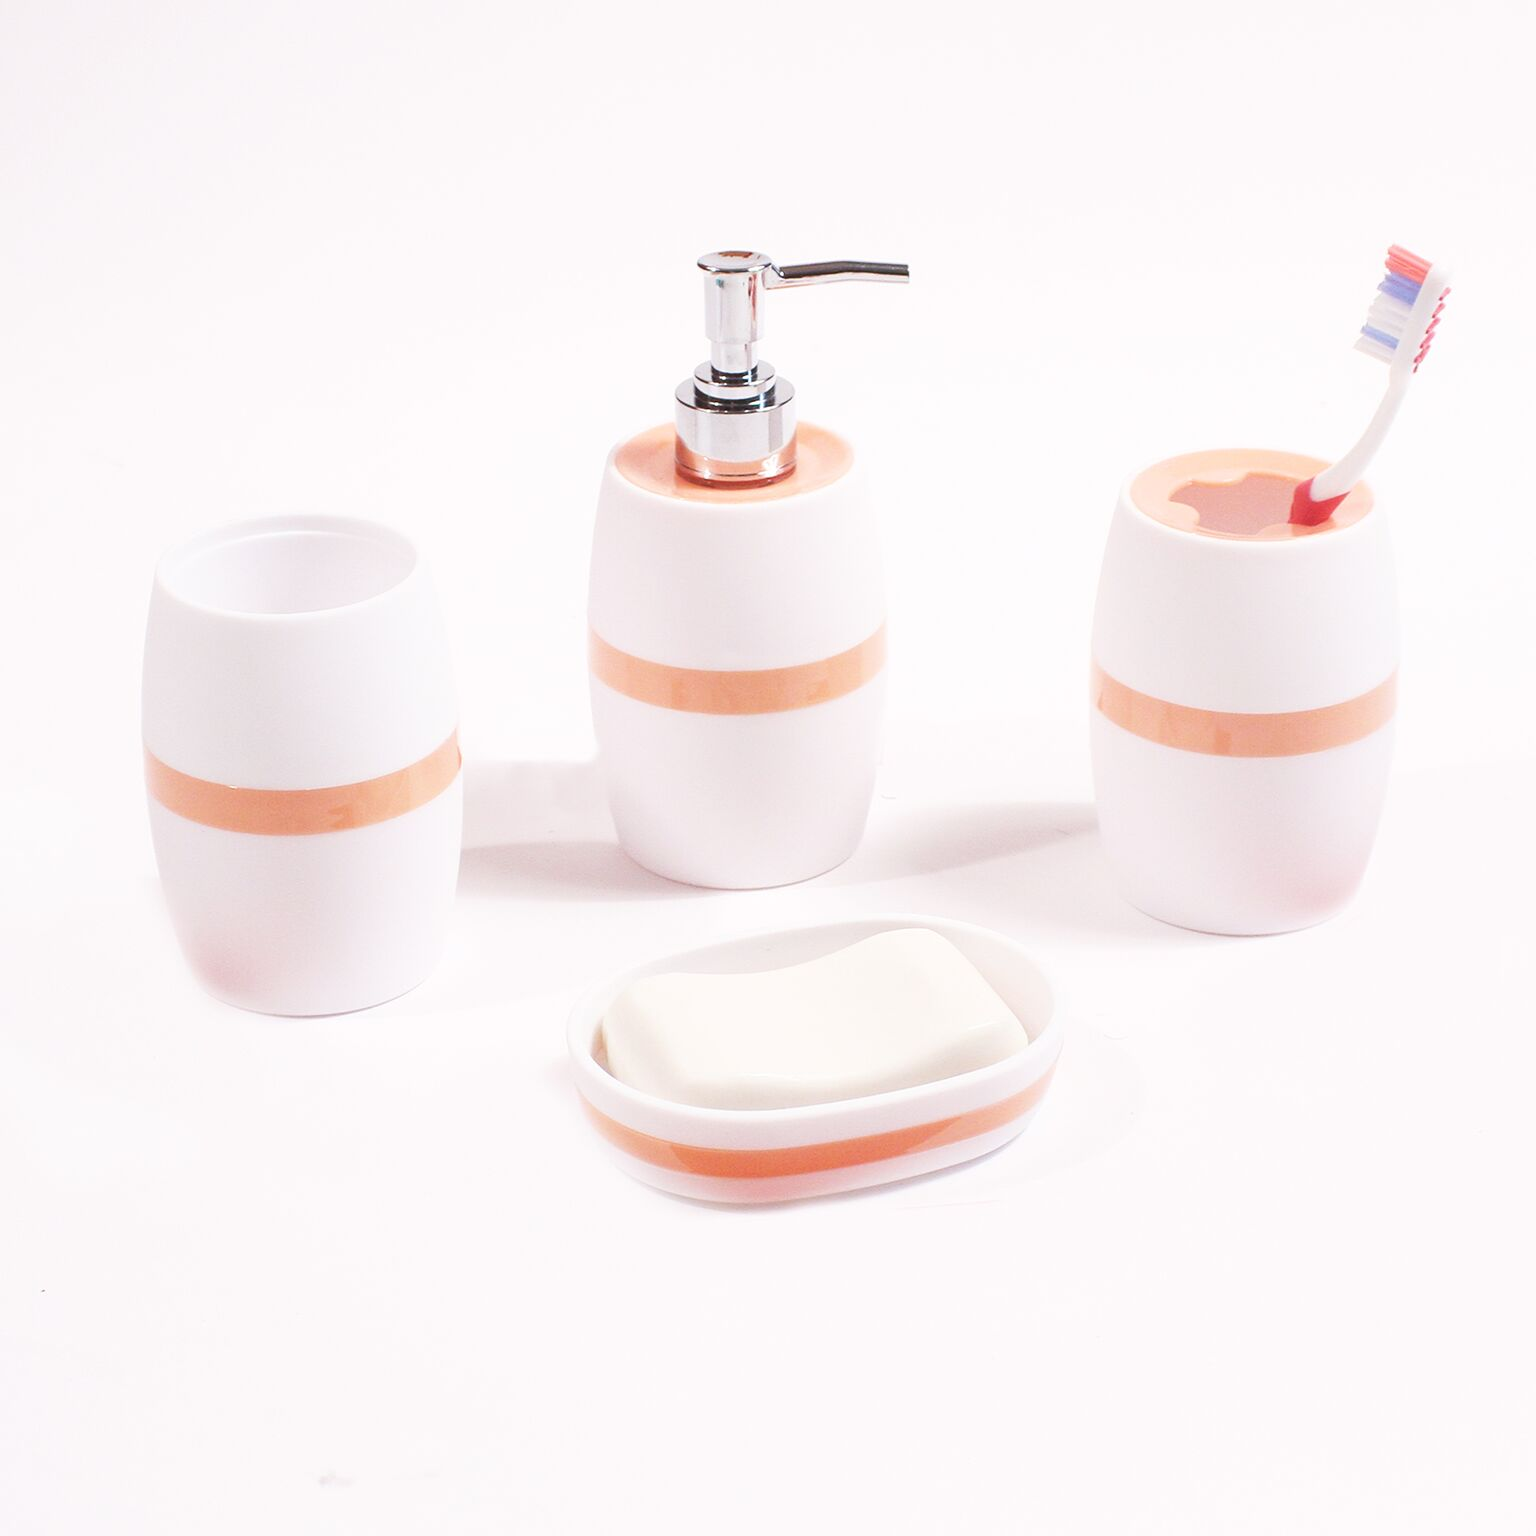 Mainstays Panel Stripe 4 Piece Bath Accessory Set, Multiple Colors by Sam Hedaya